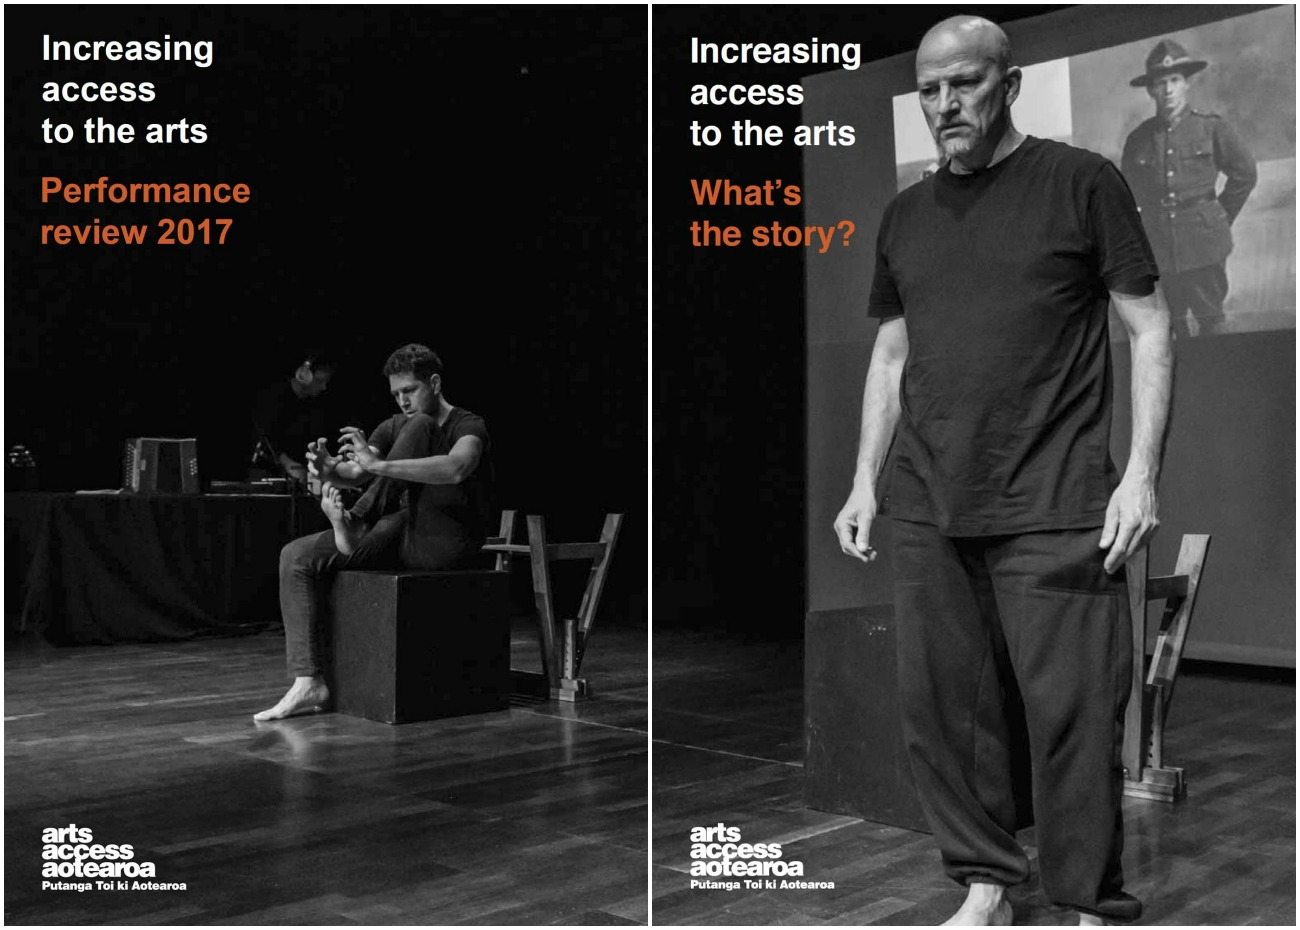 Front covers of the Performance Review 2017 and What's the story? 2017